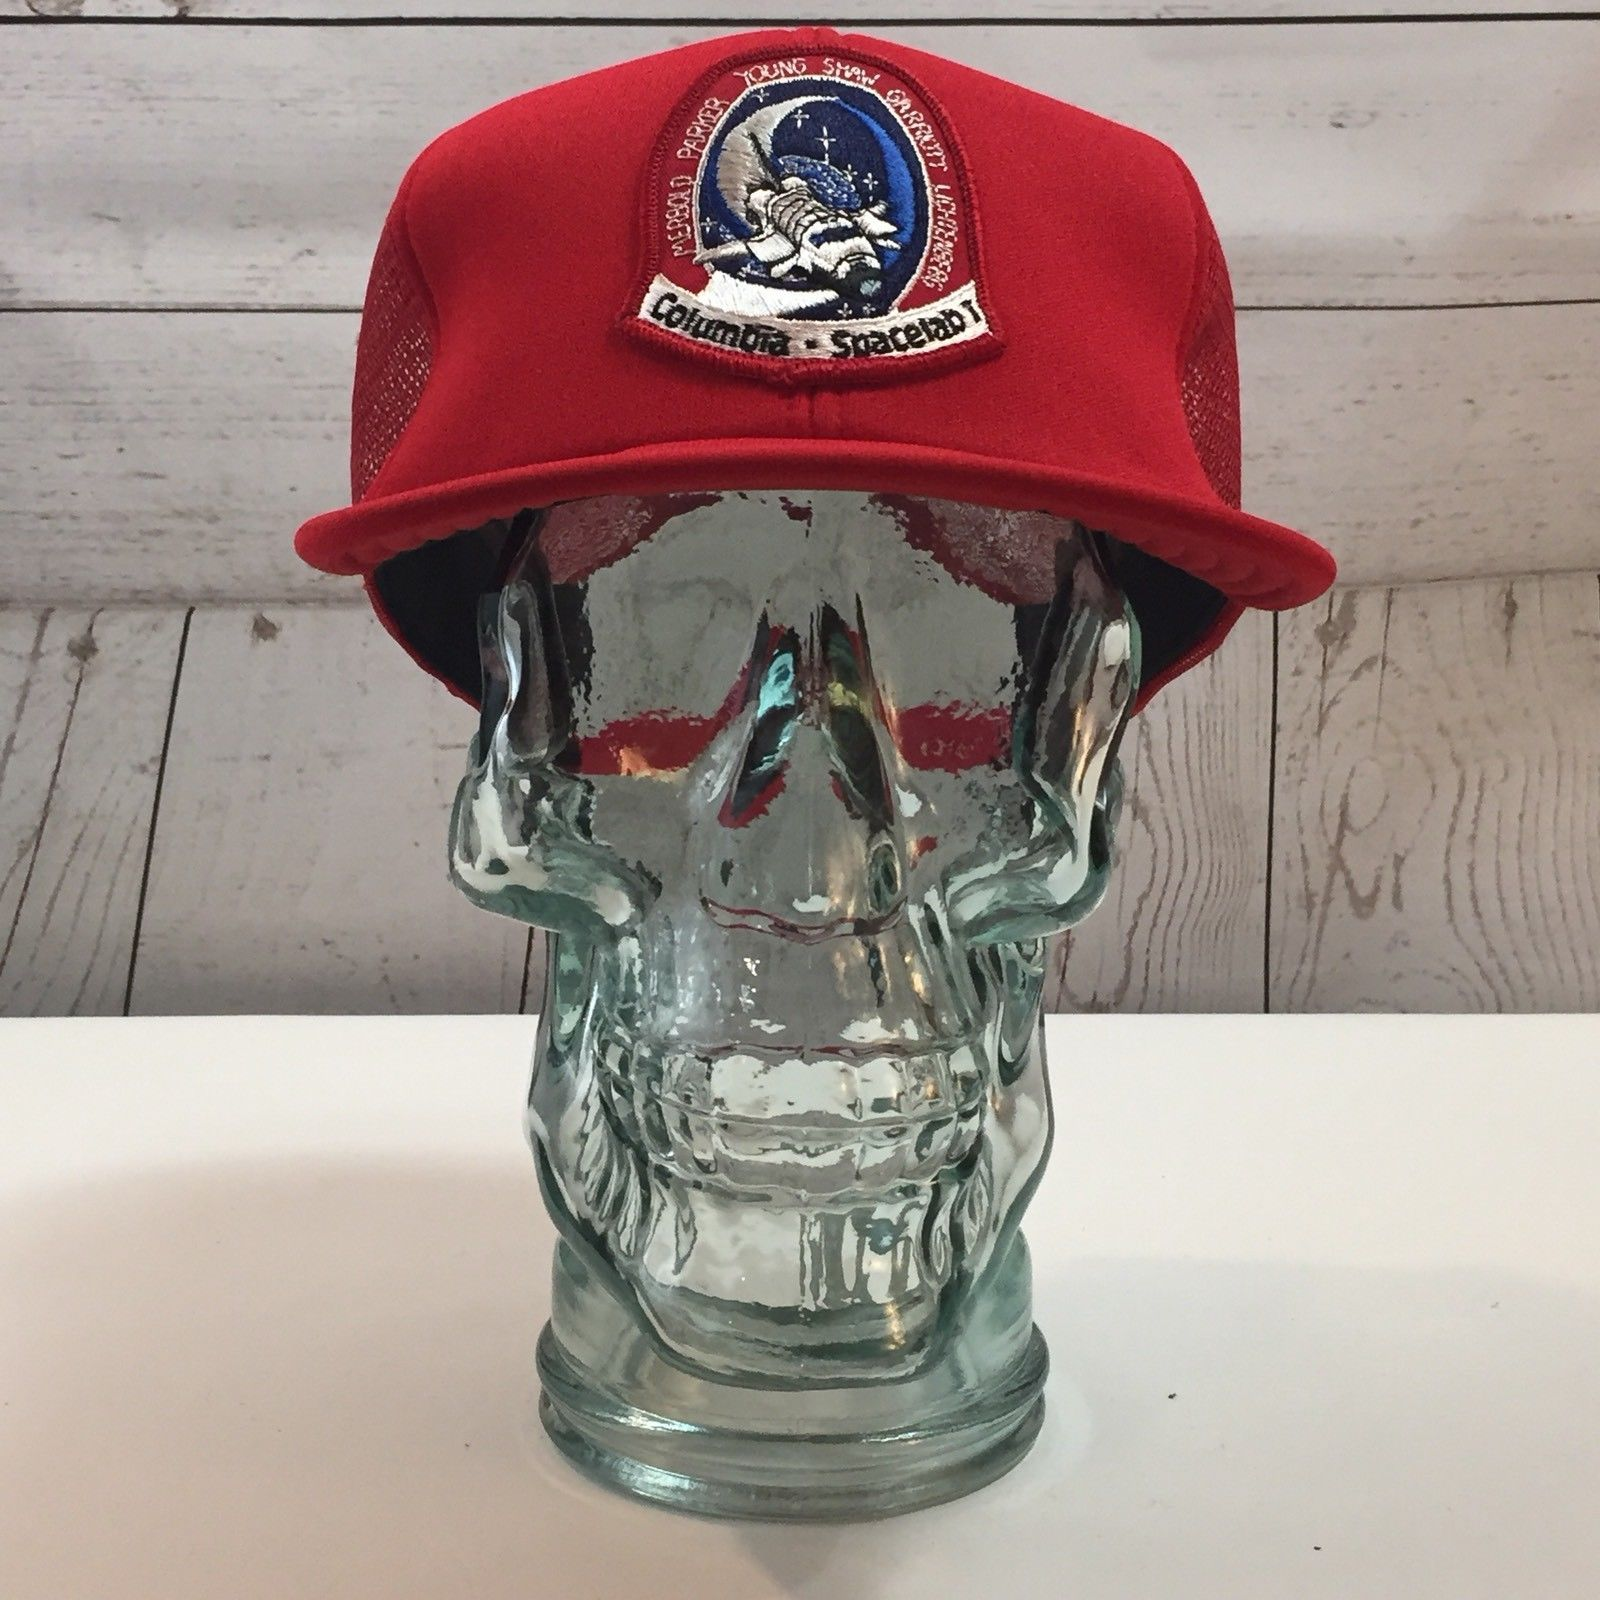 Columbia Spacelab Patch Front Red Mesh Adjustable Truckers Cap Hat NOS